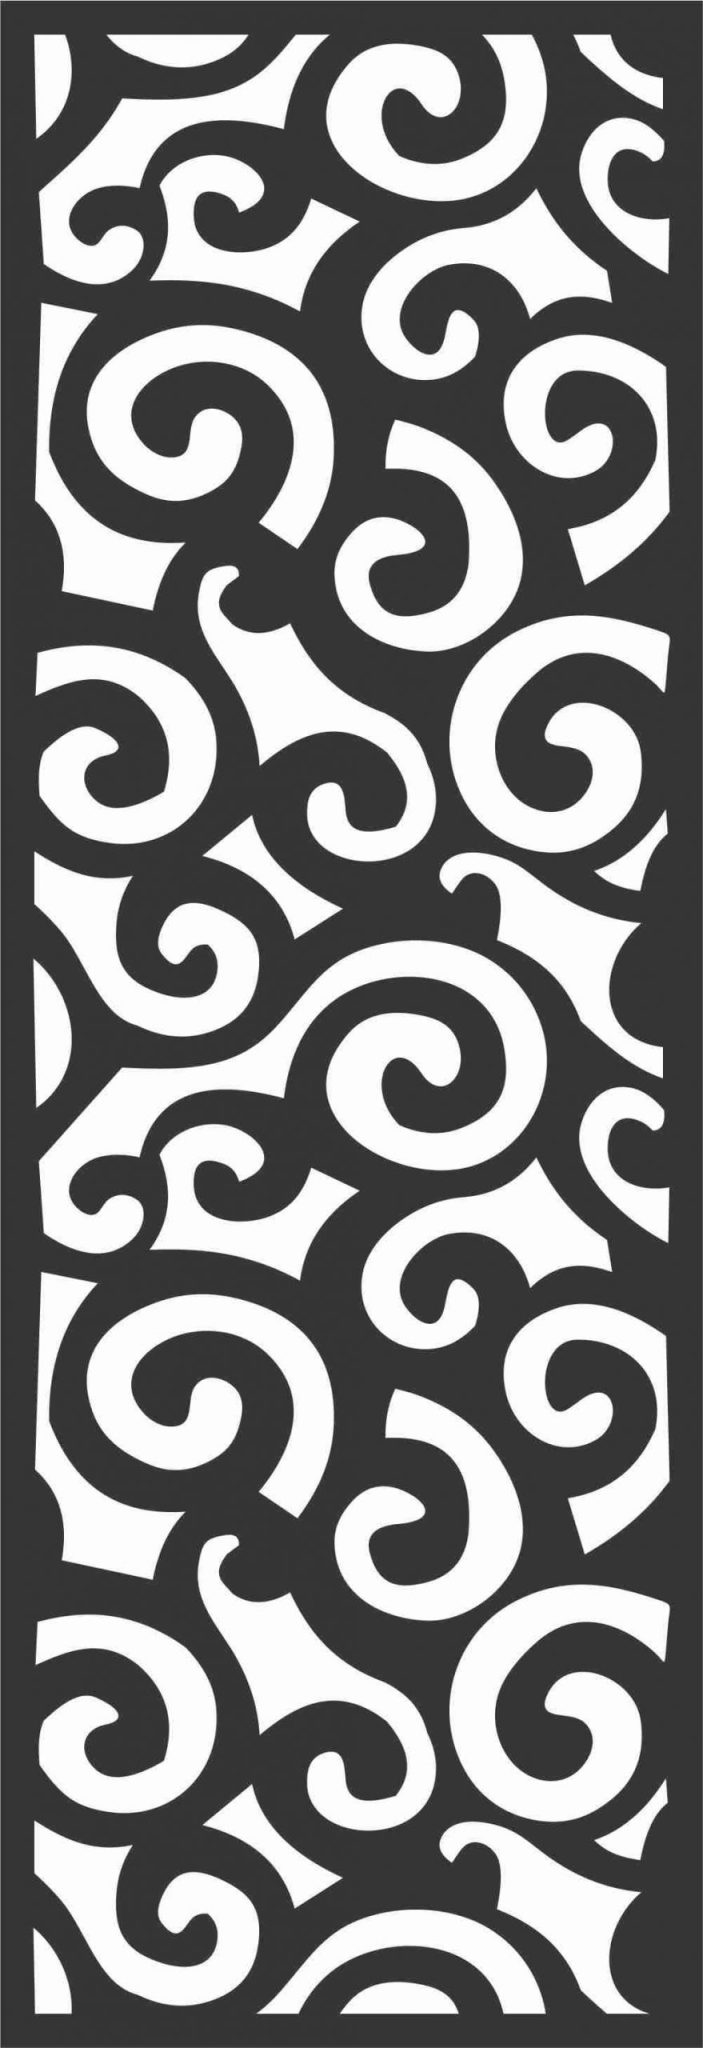 Decorative Screen Patterns For Laser Cutting 67 Free DXF File